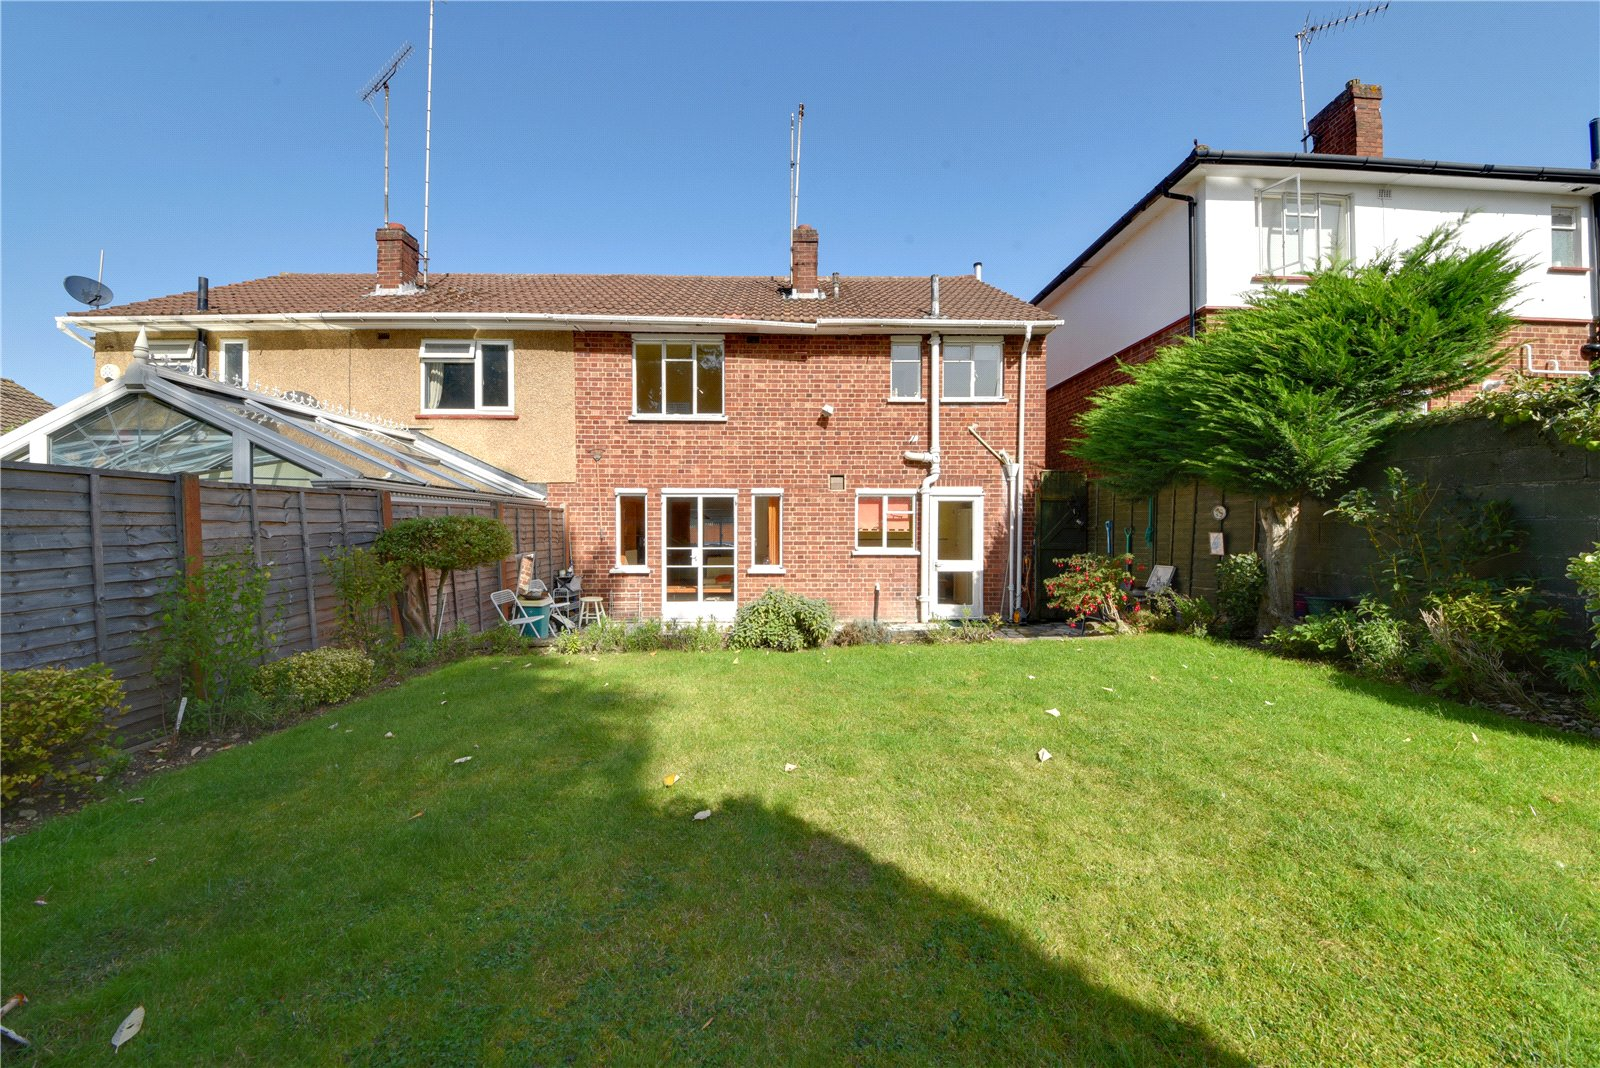 3 bed house for sale in West Finchley, N3 1PB  - Property Image 12